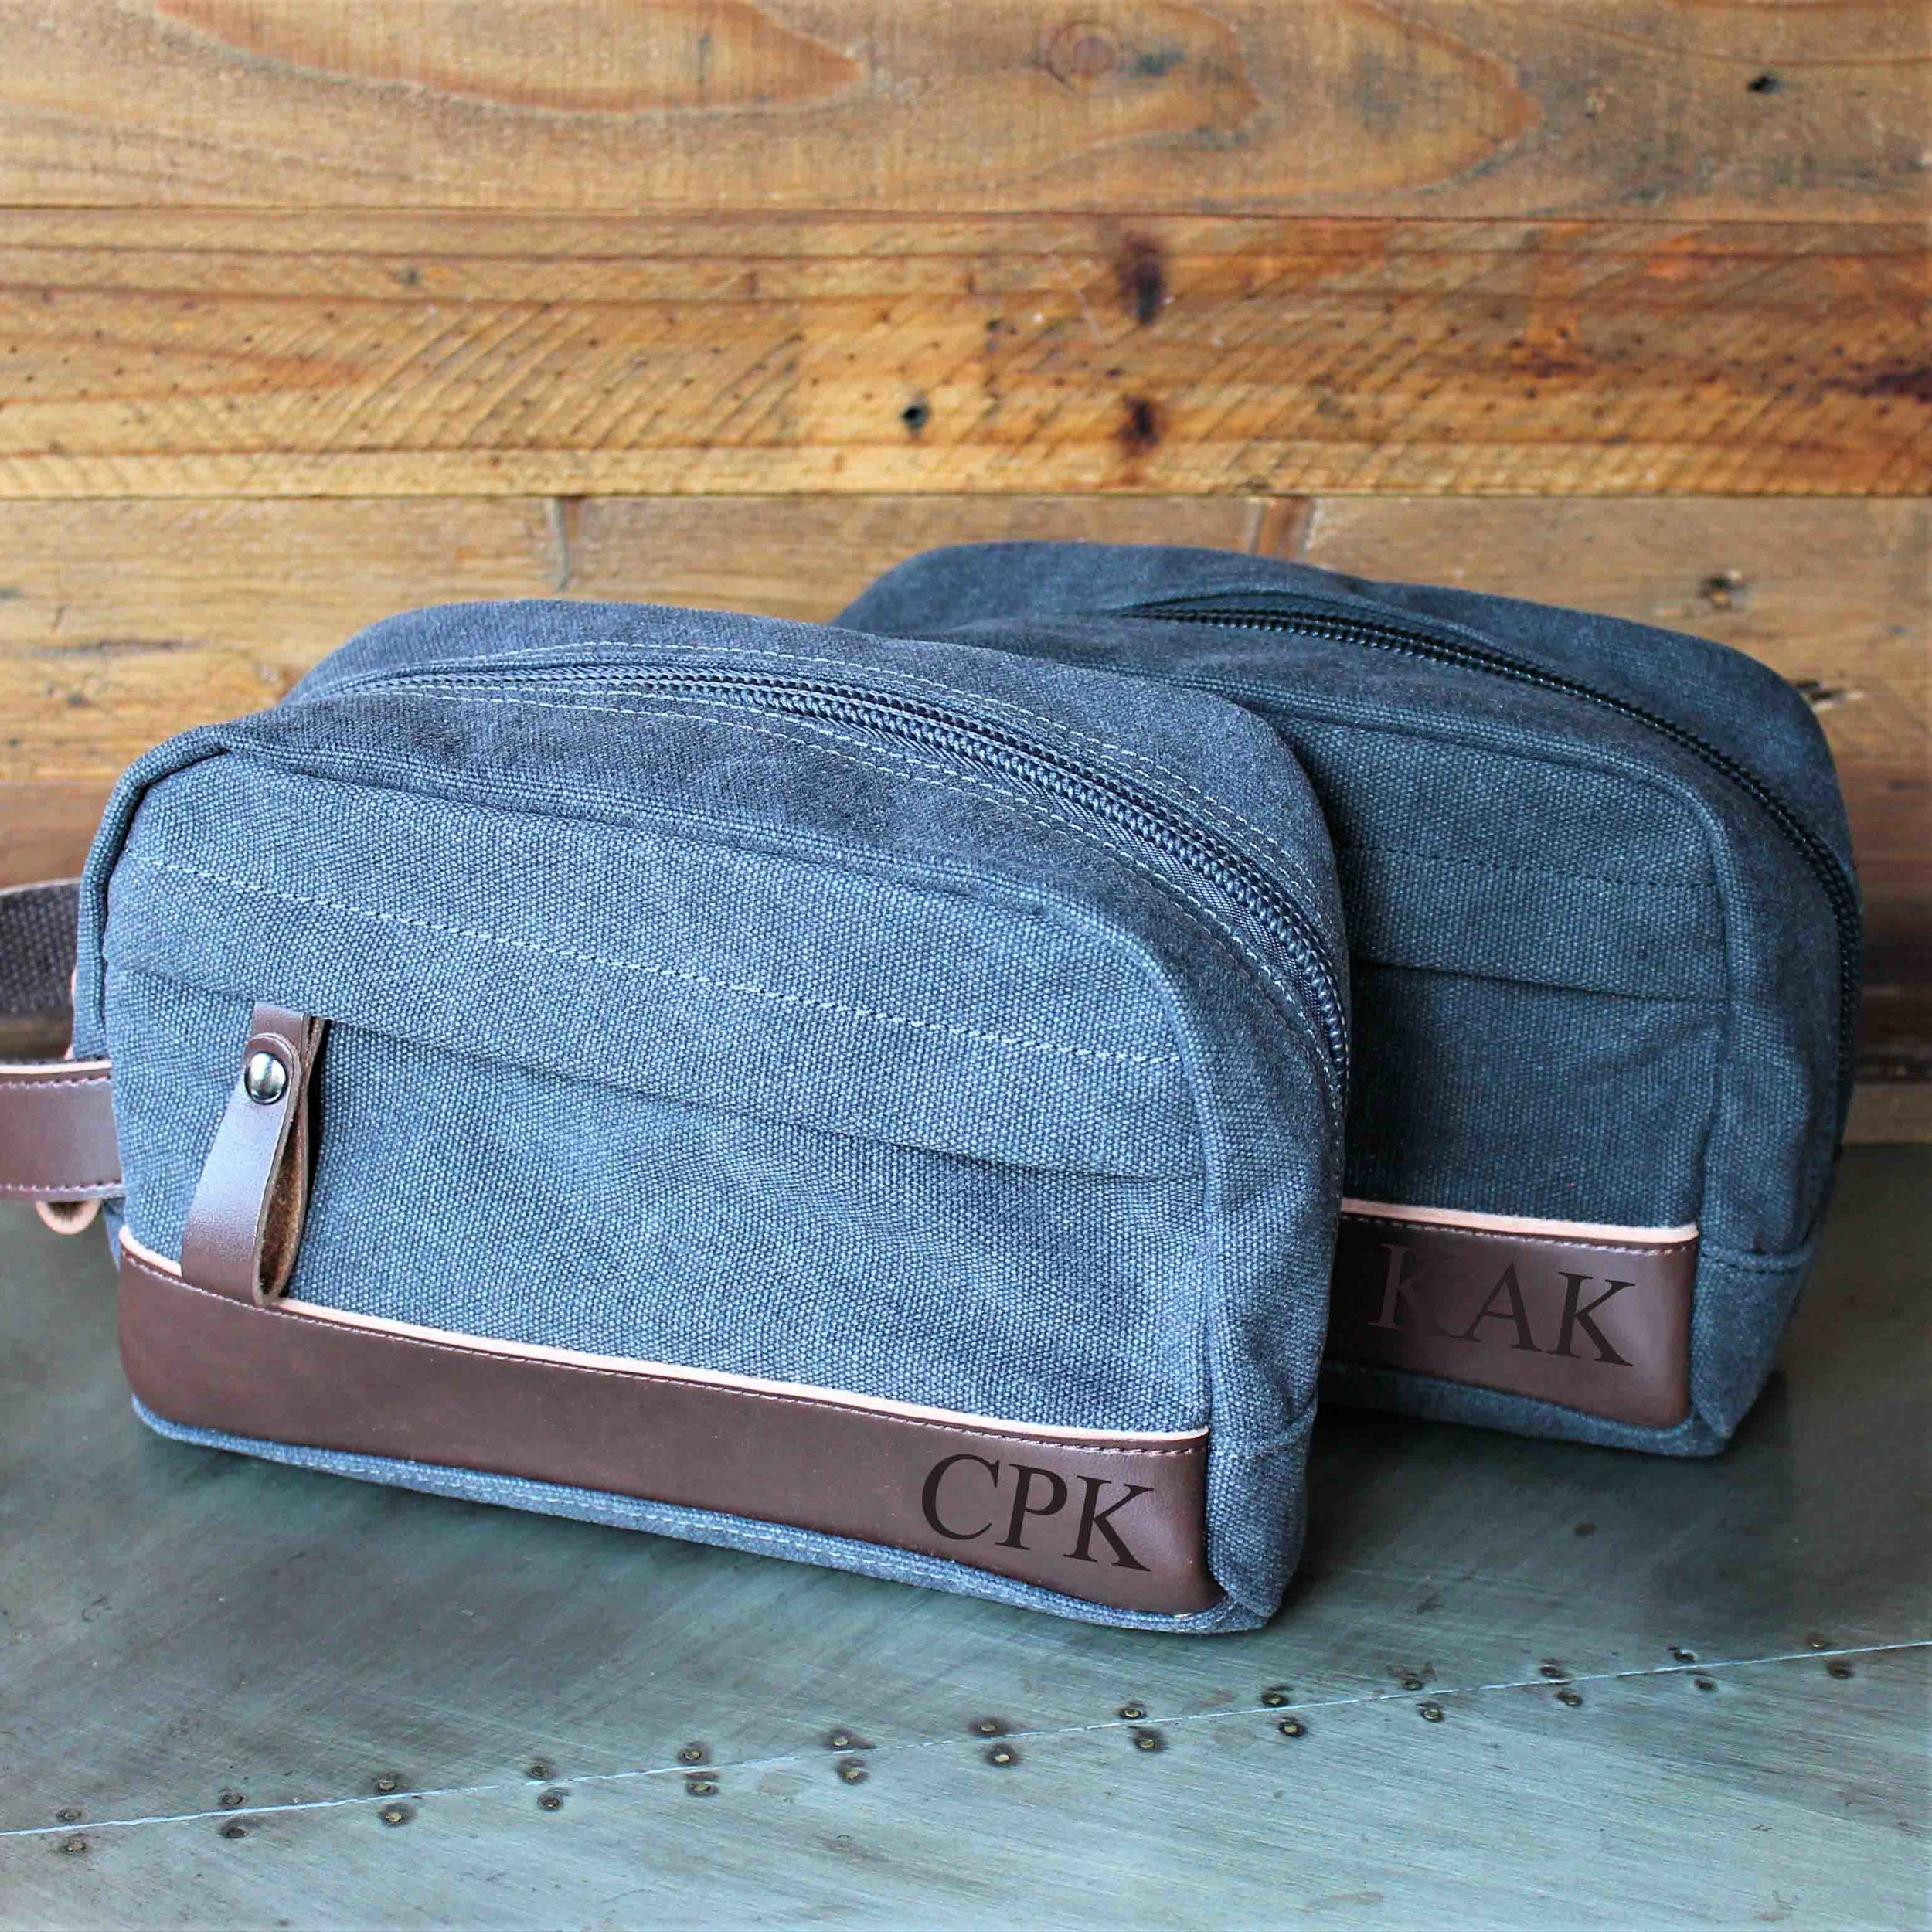 49eaf5a7ebbe The Peale™ - Groomsmen's Travel Size Toiletry Bag in Gray or Black -  Personalized Canvas Dopp Kit, Genuine Leather Accents, Groomsman, Best Man  Gift ...